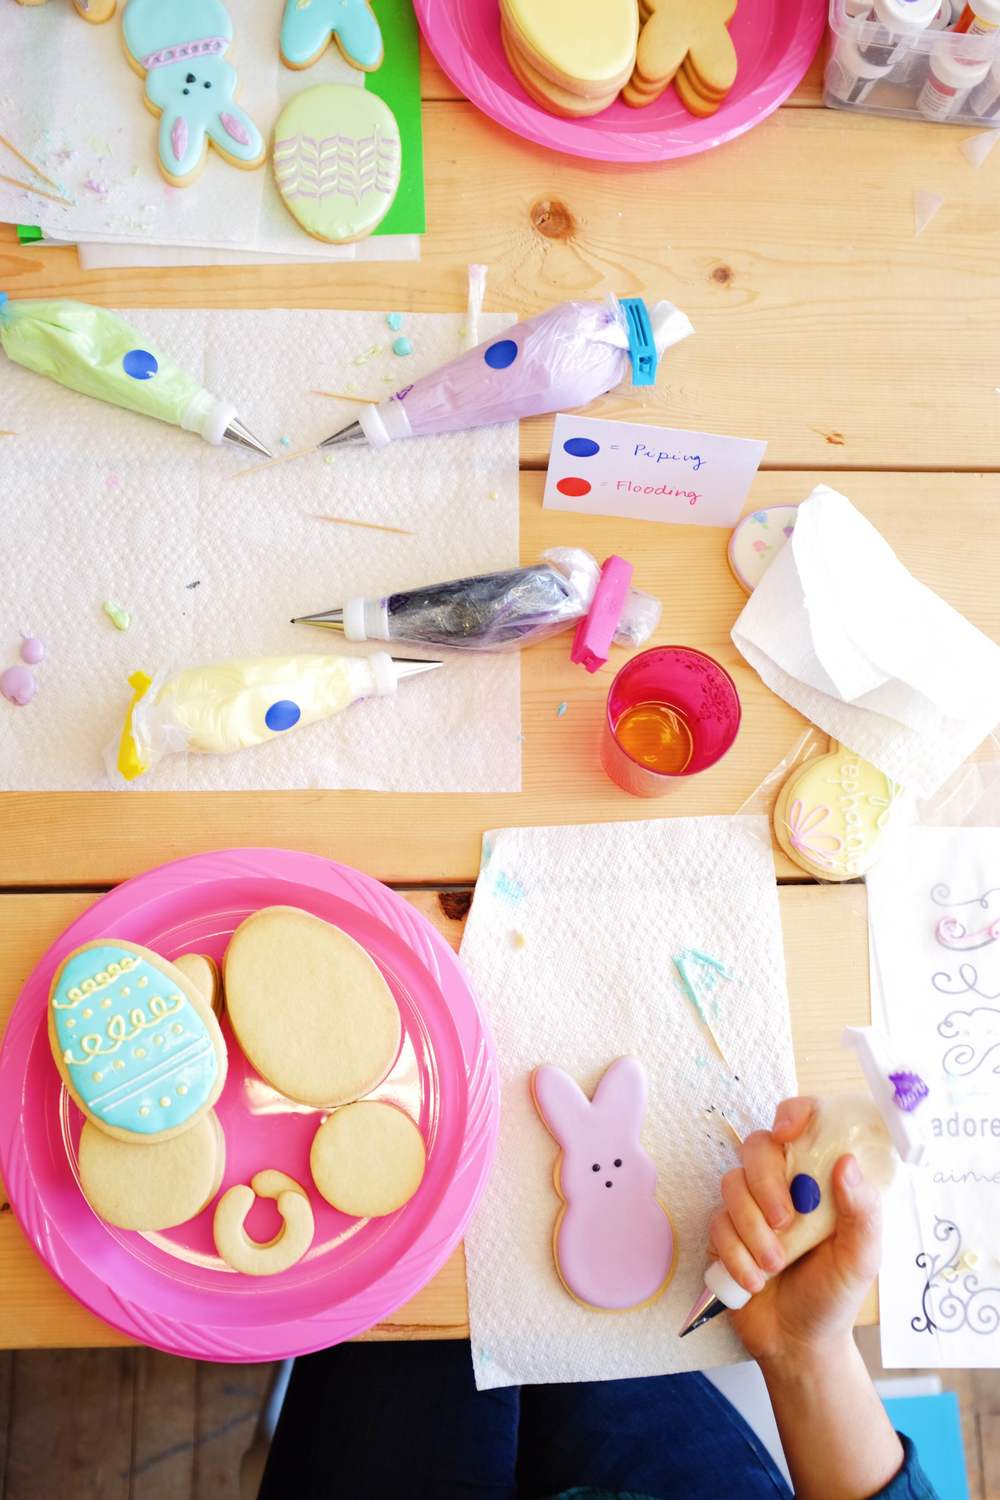 Miss Cloudy x Baba Souk x Johanie les biscuits cookie decoration diy workshop montreal